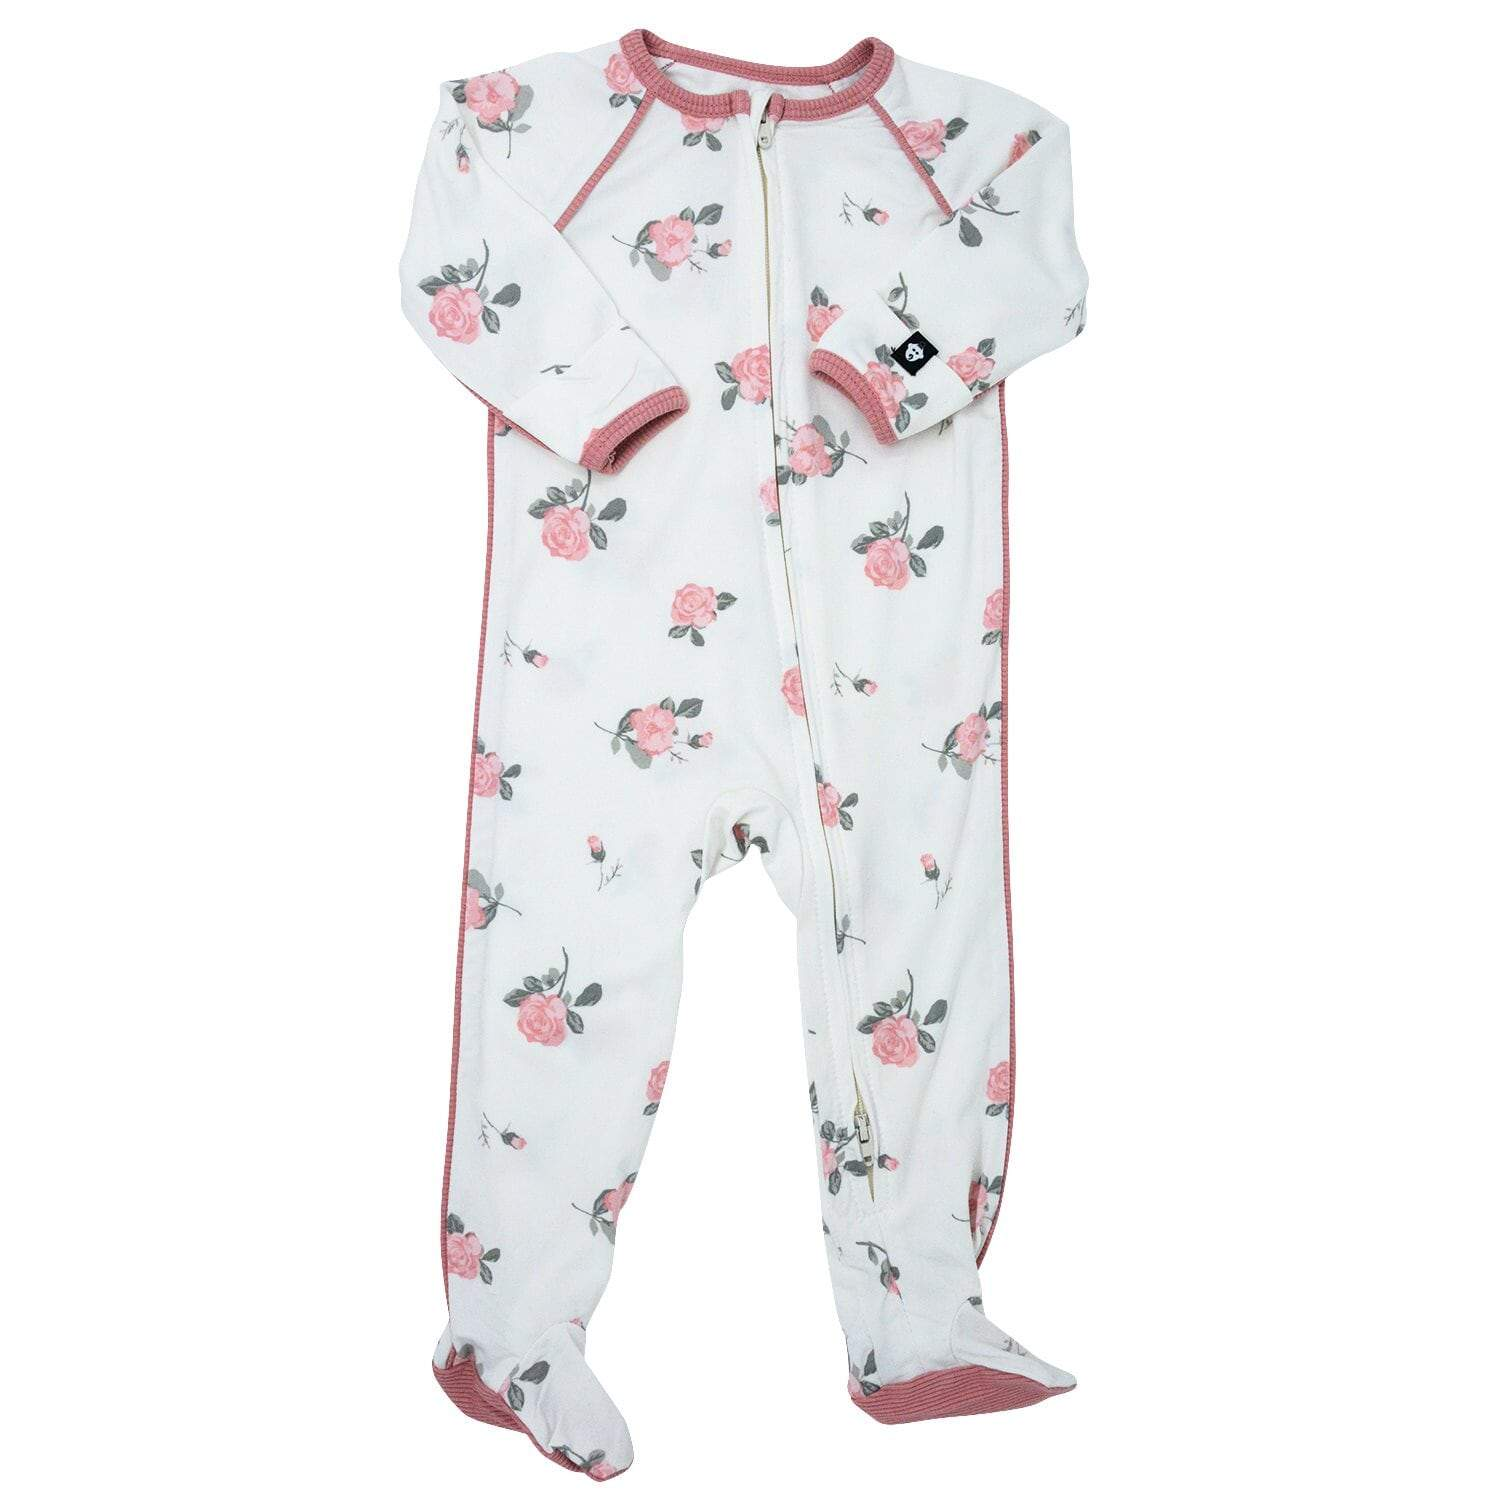 Piped Zipper Footie - Roses White - Sweet Bamboo